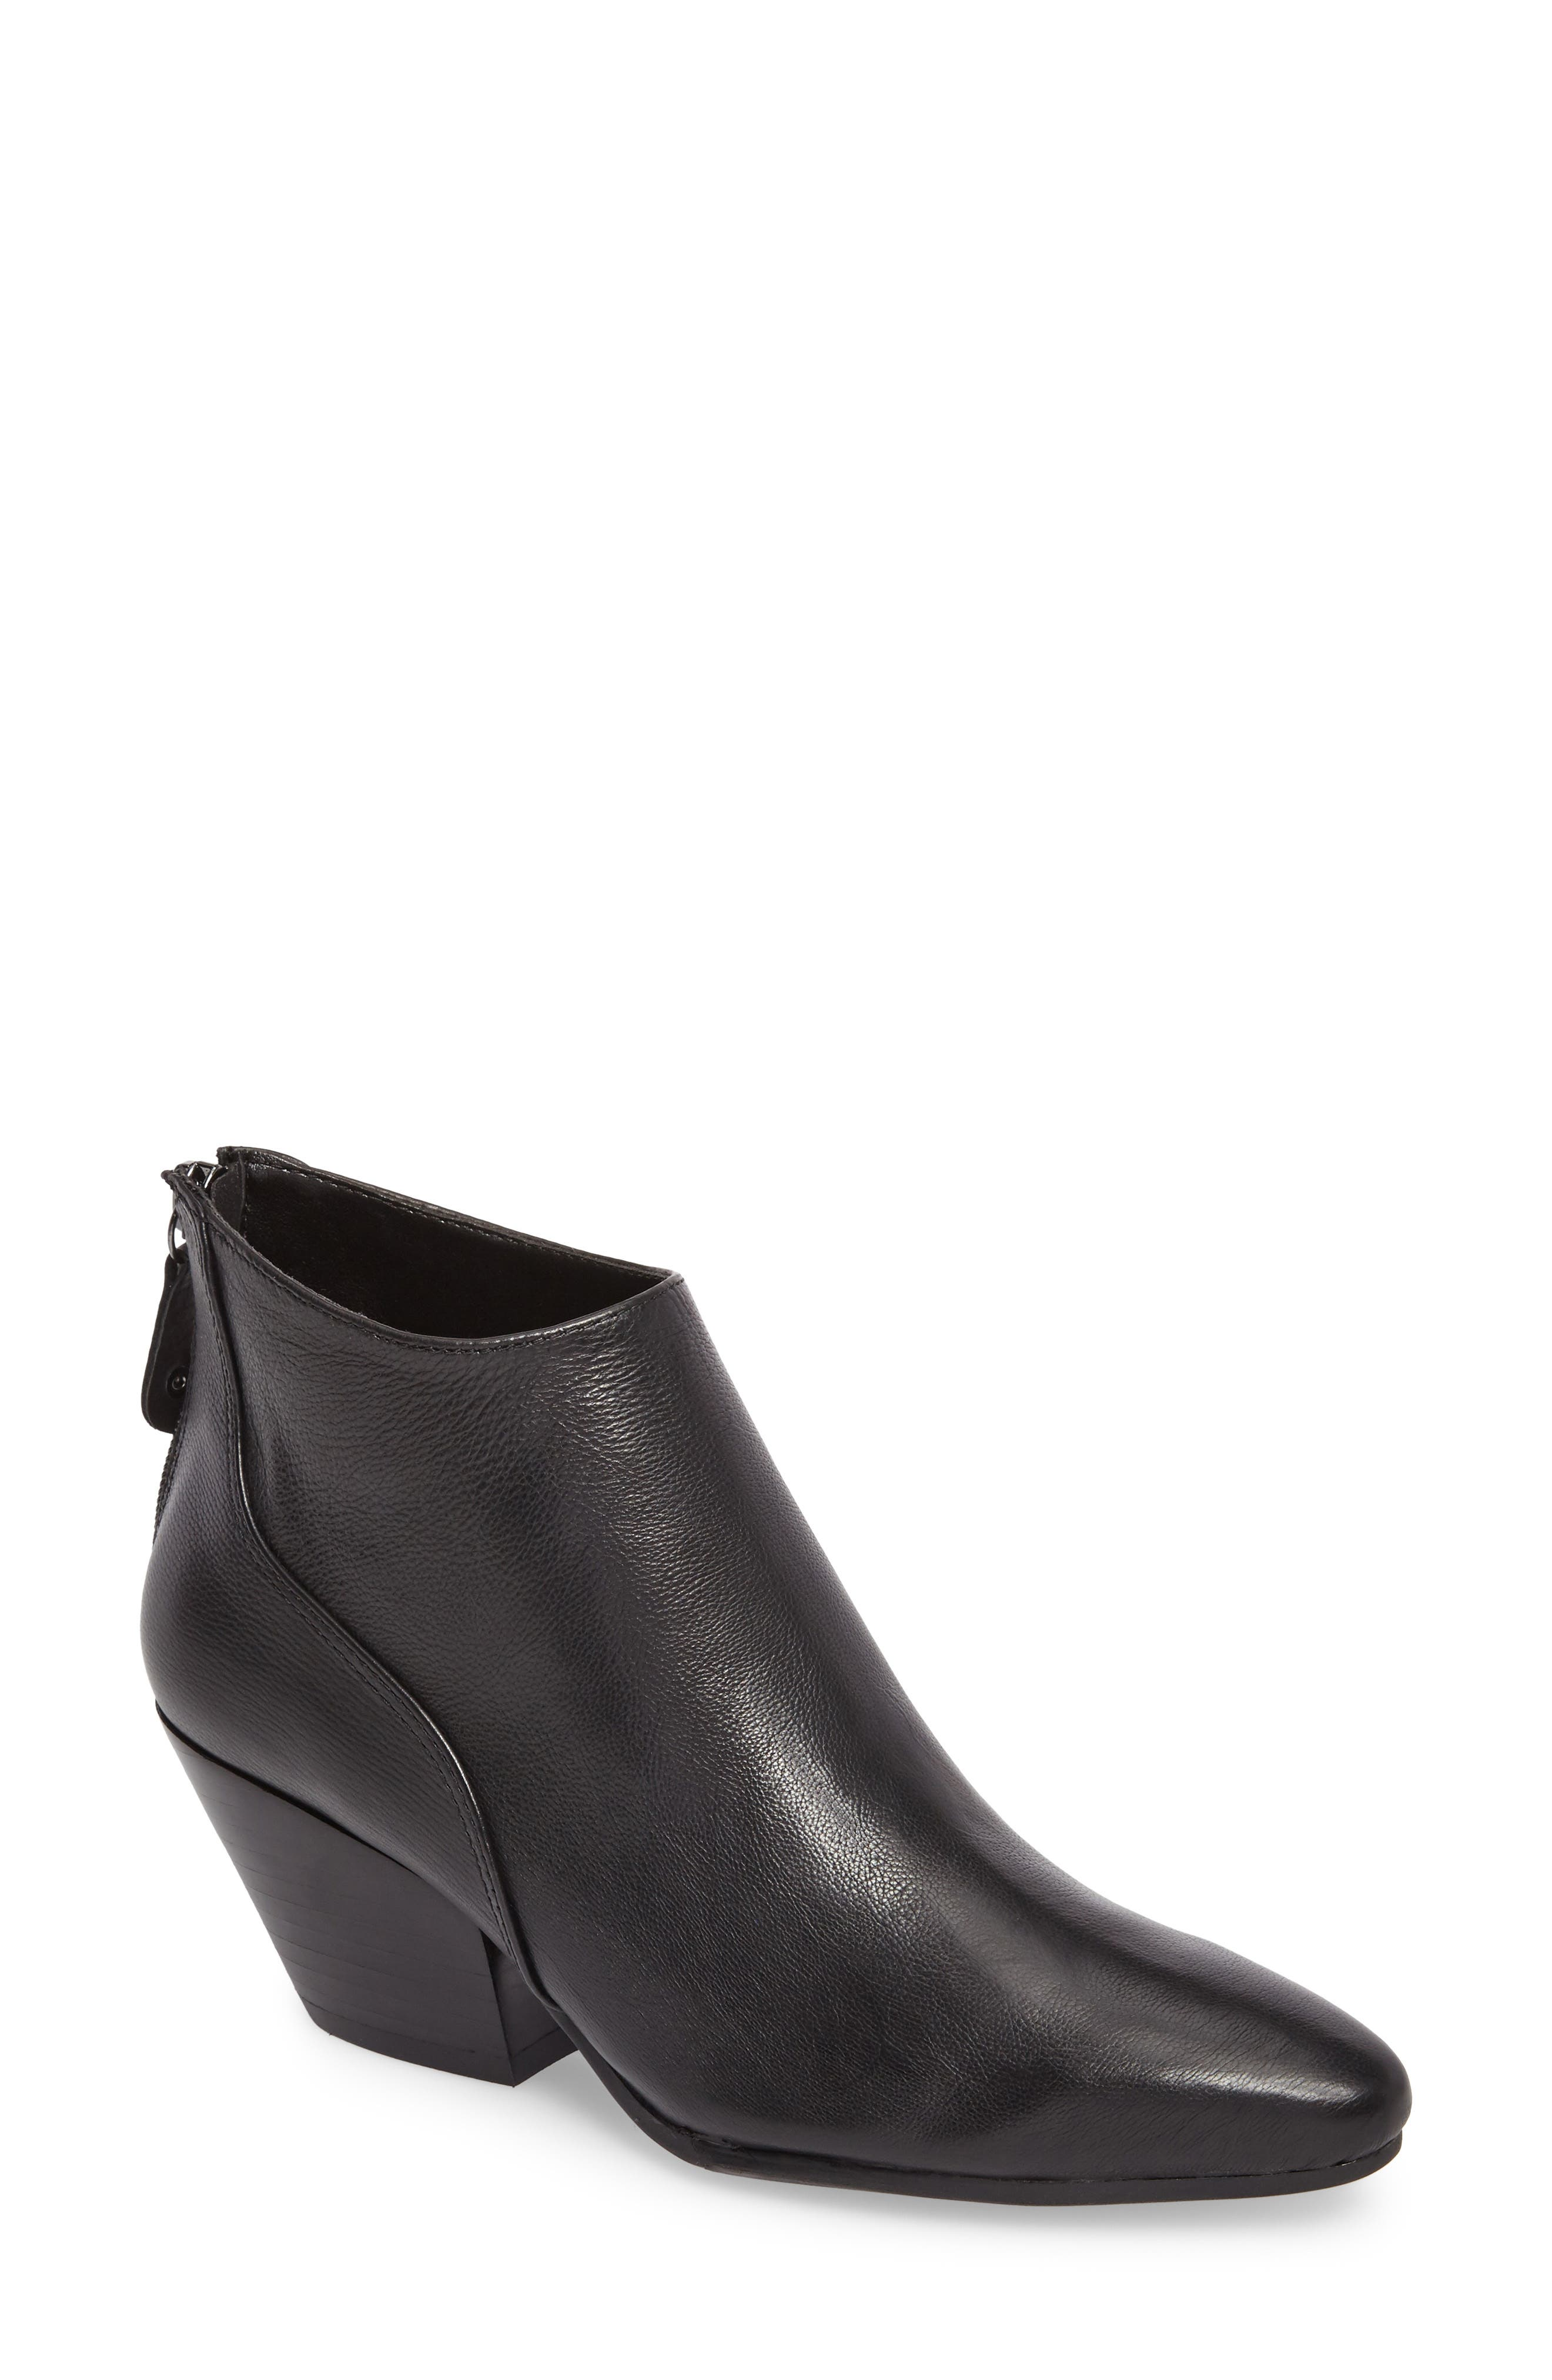 Ruby Bootie,                             Main thumbnail 1, color,                             Black Leather